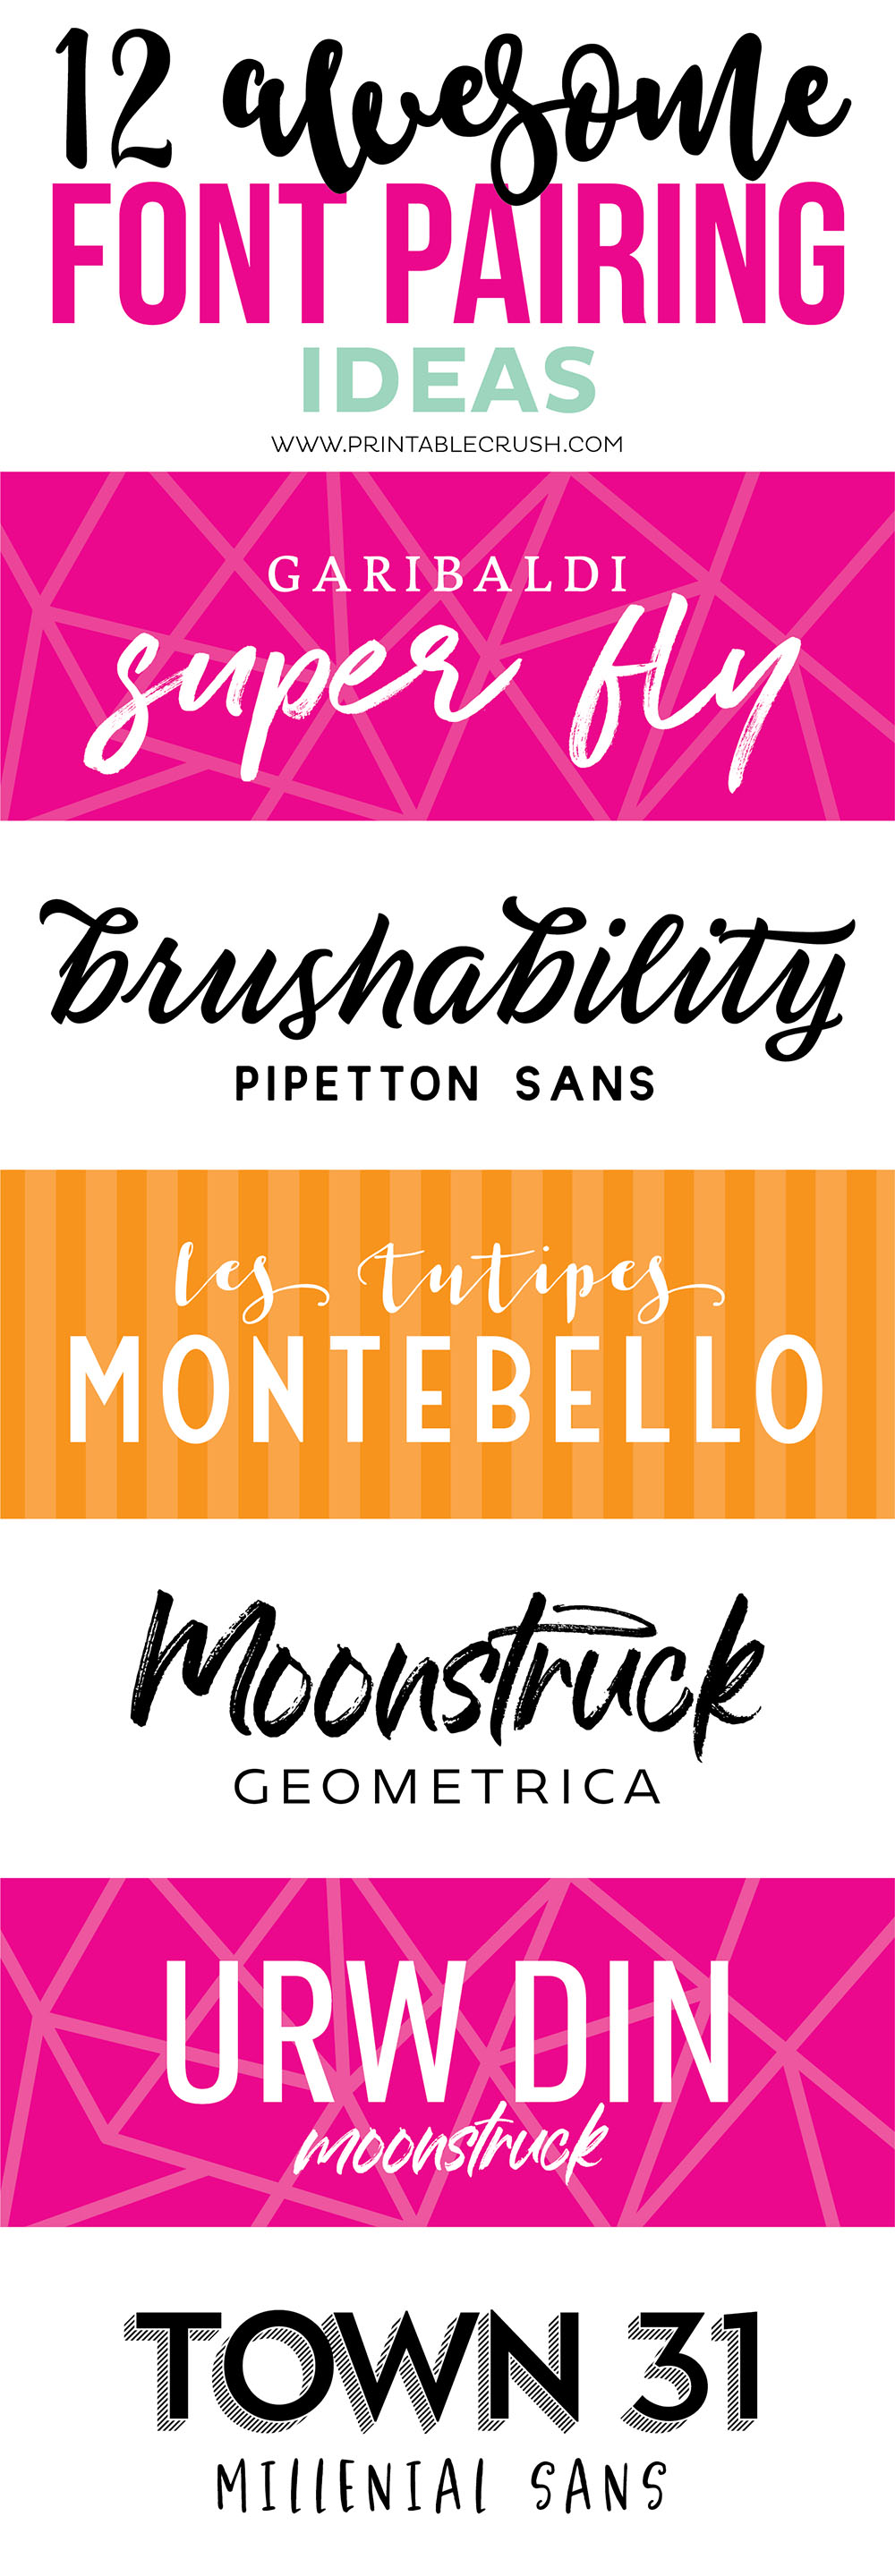 These Font Pairing Ideas are gorgeous! The fonts from Design Cuts pair beautifully!